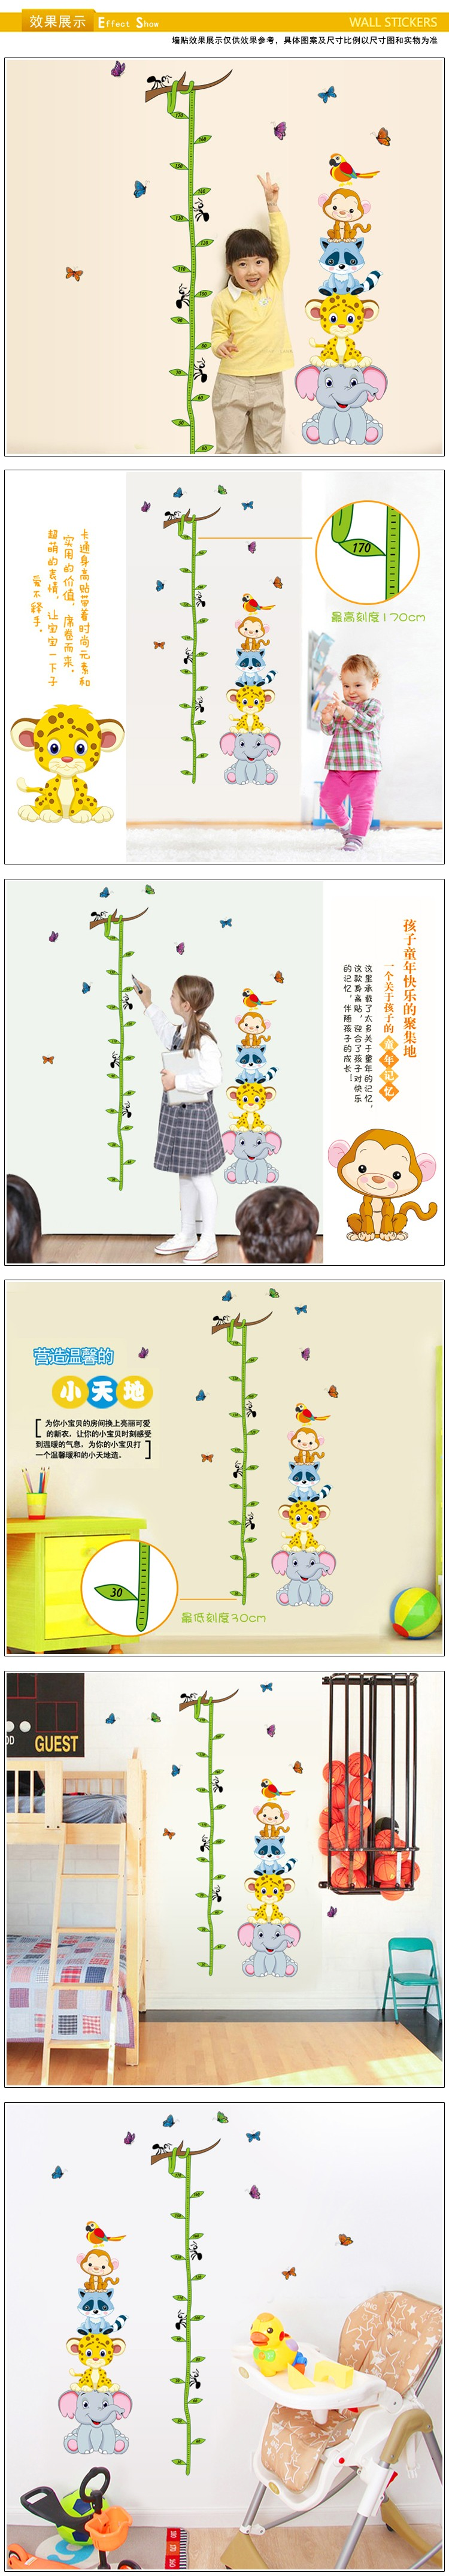 HTB1dpR9fYsTMeJjSsziq6AdwXXaz - Cute tiger animals stack height measure wall stickers decal kids adhesive vinyl wallpaper mural baby girl boy room nursery decor